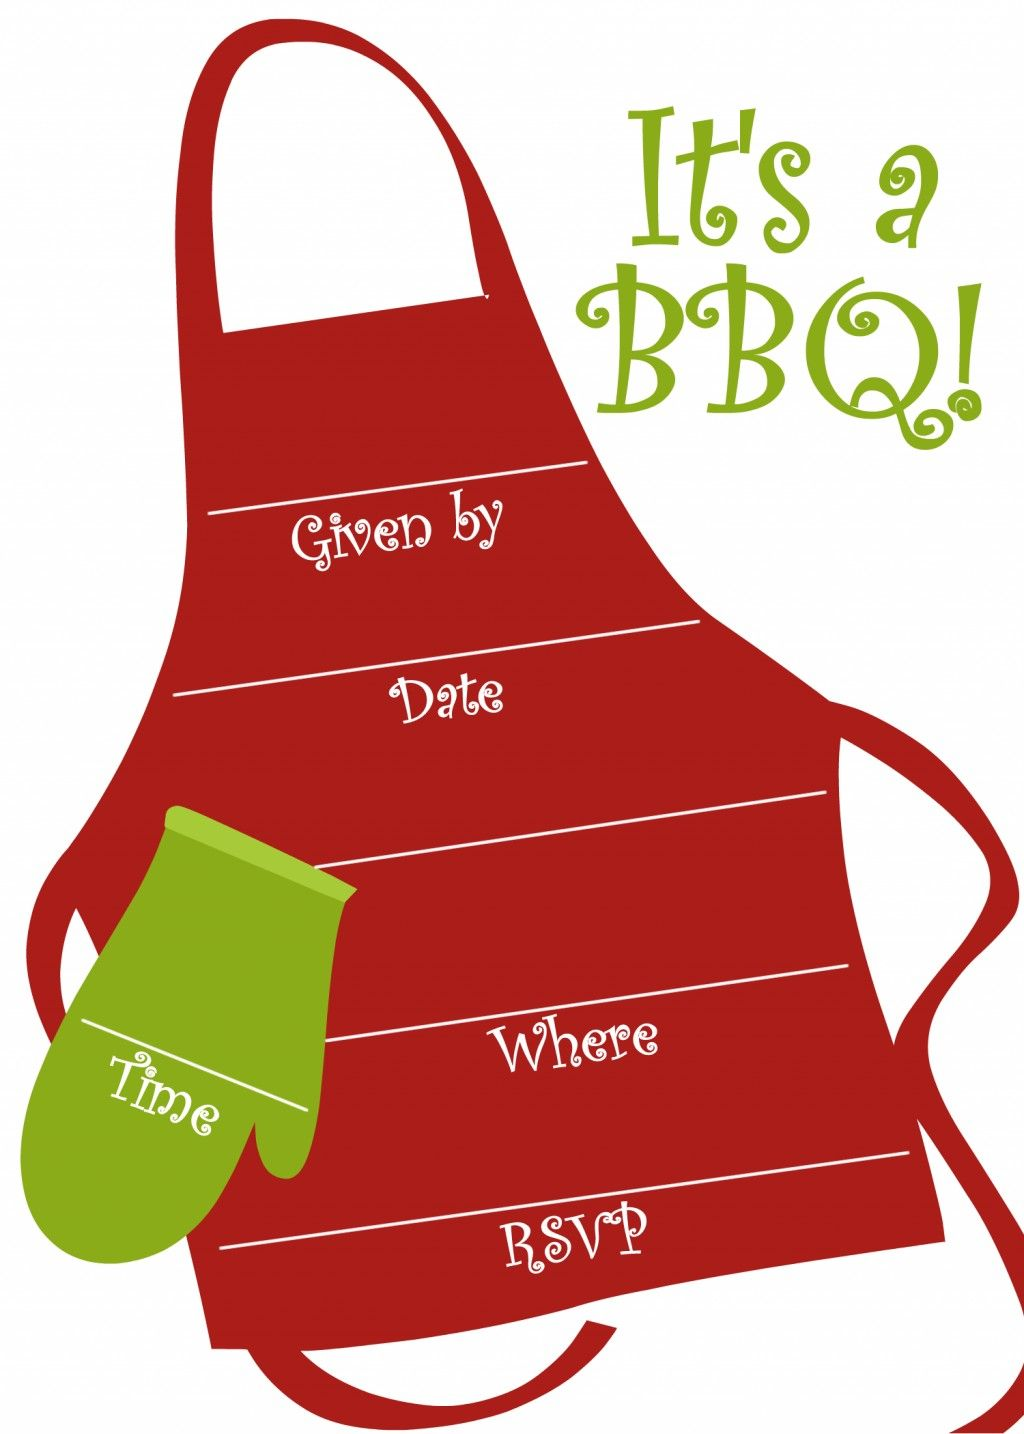 Free BBQ Party Invitations Templates | Party invitation templates ...